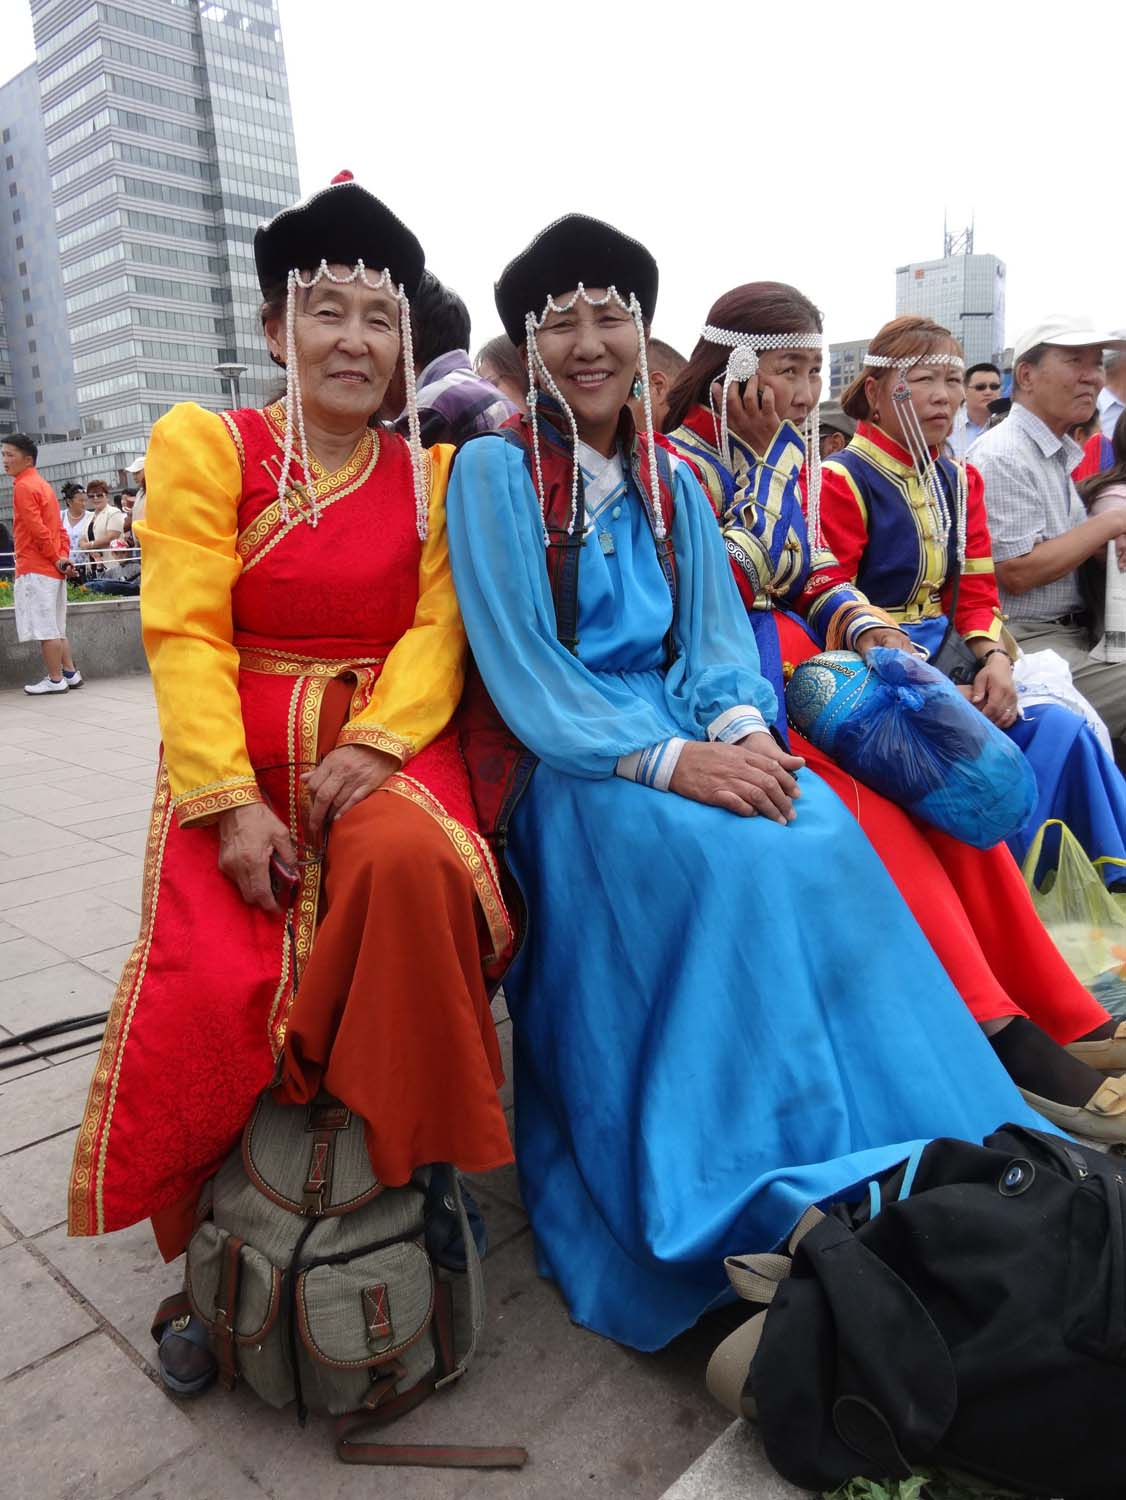 ladies wearing traditional dress in the main square of UB